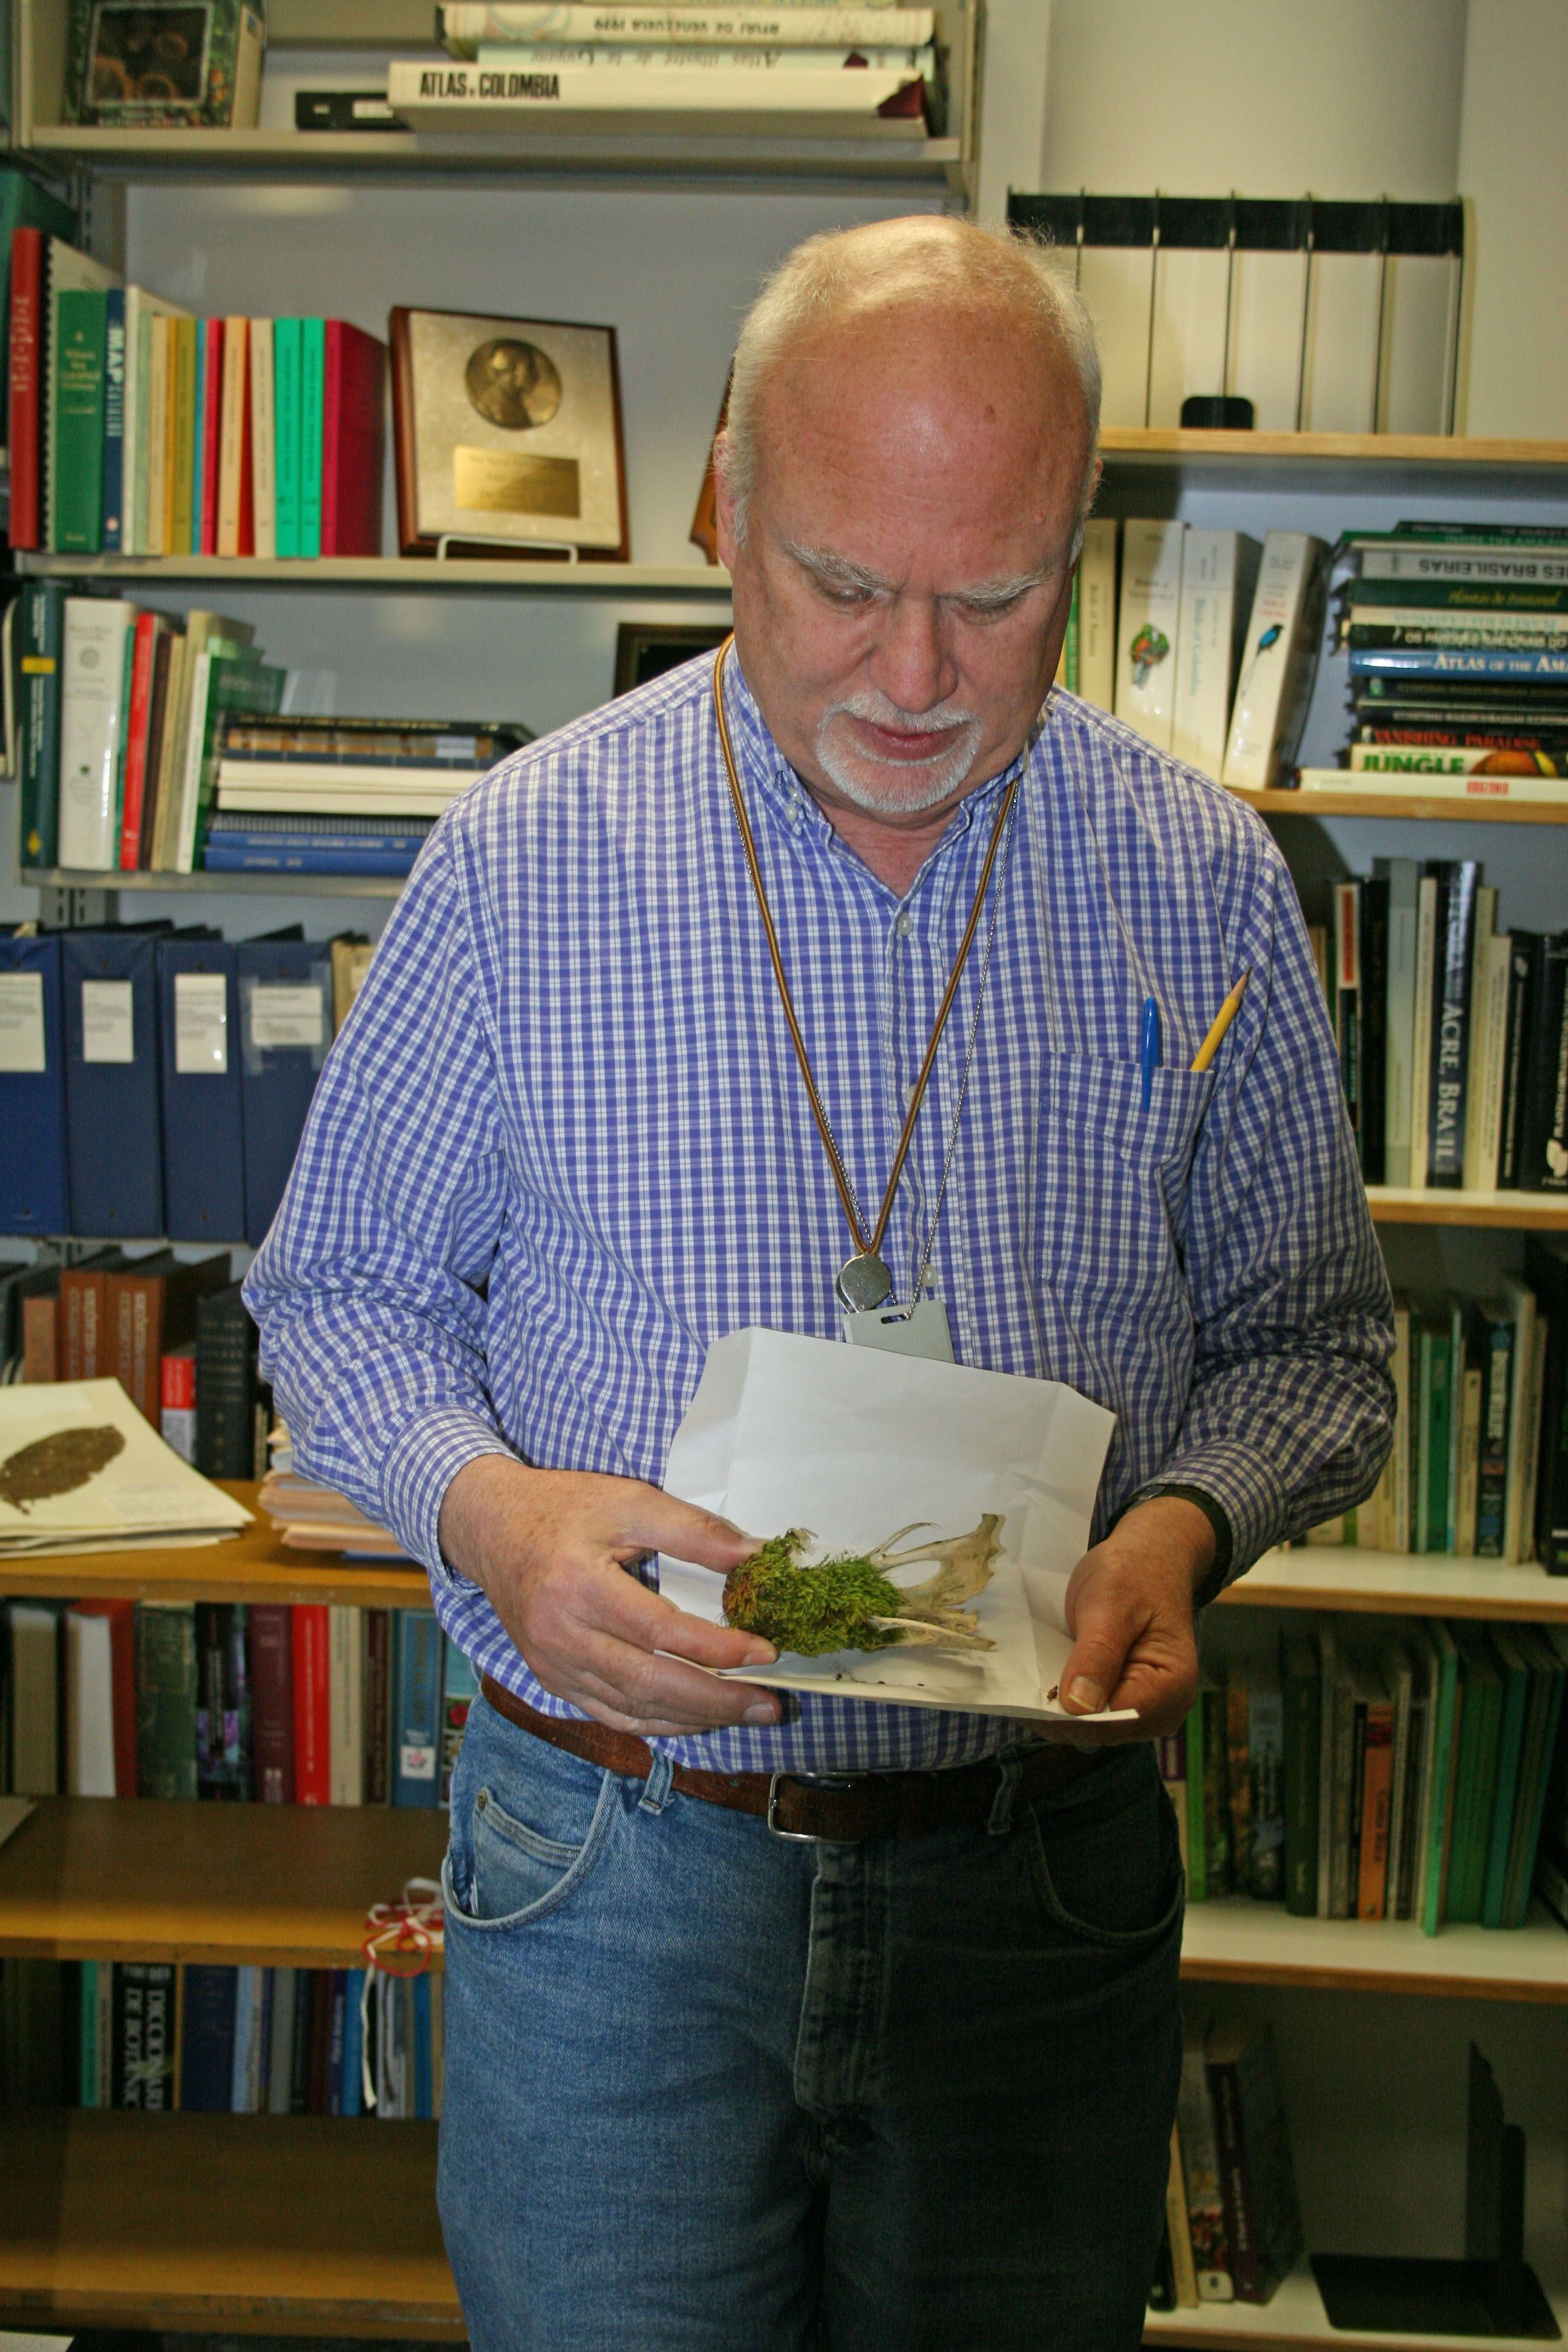 Bill Buck showing a moss growing on the bones of an animal. Photo by S. A. Mori.